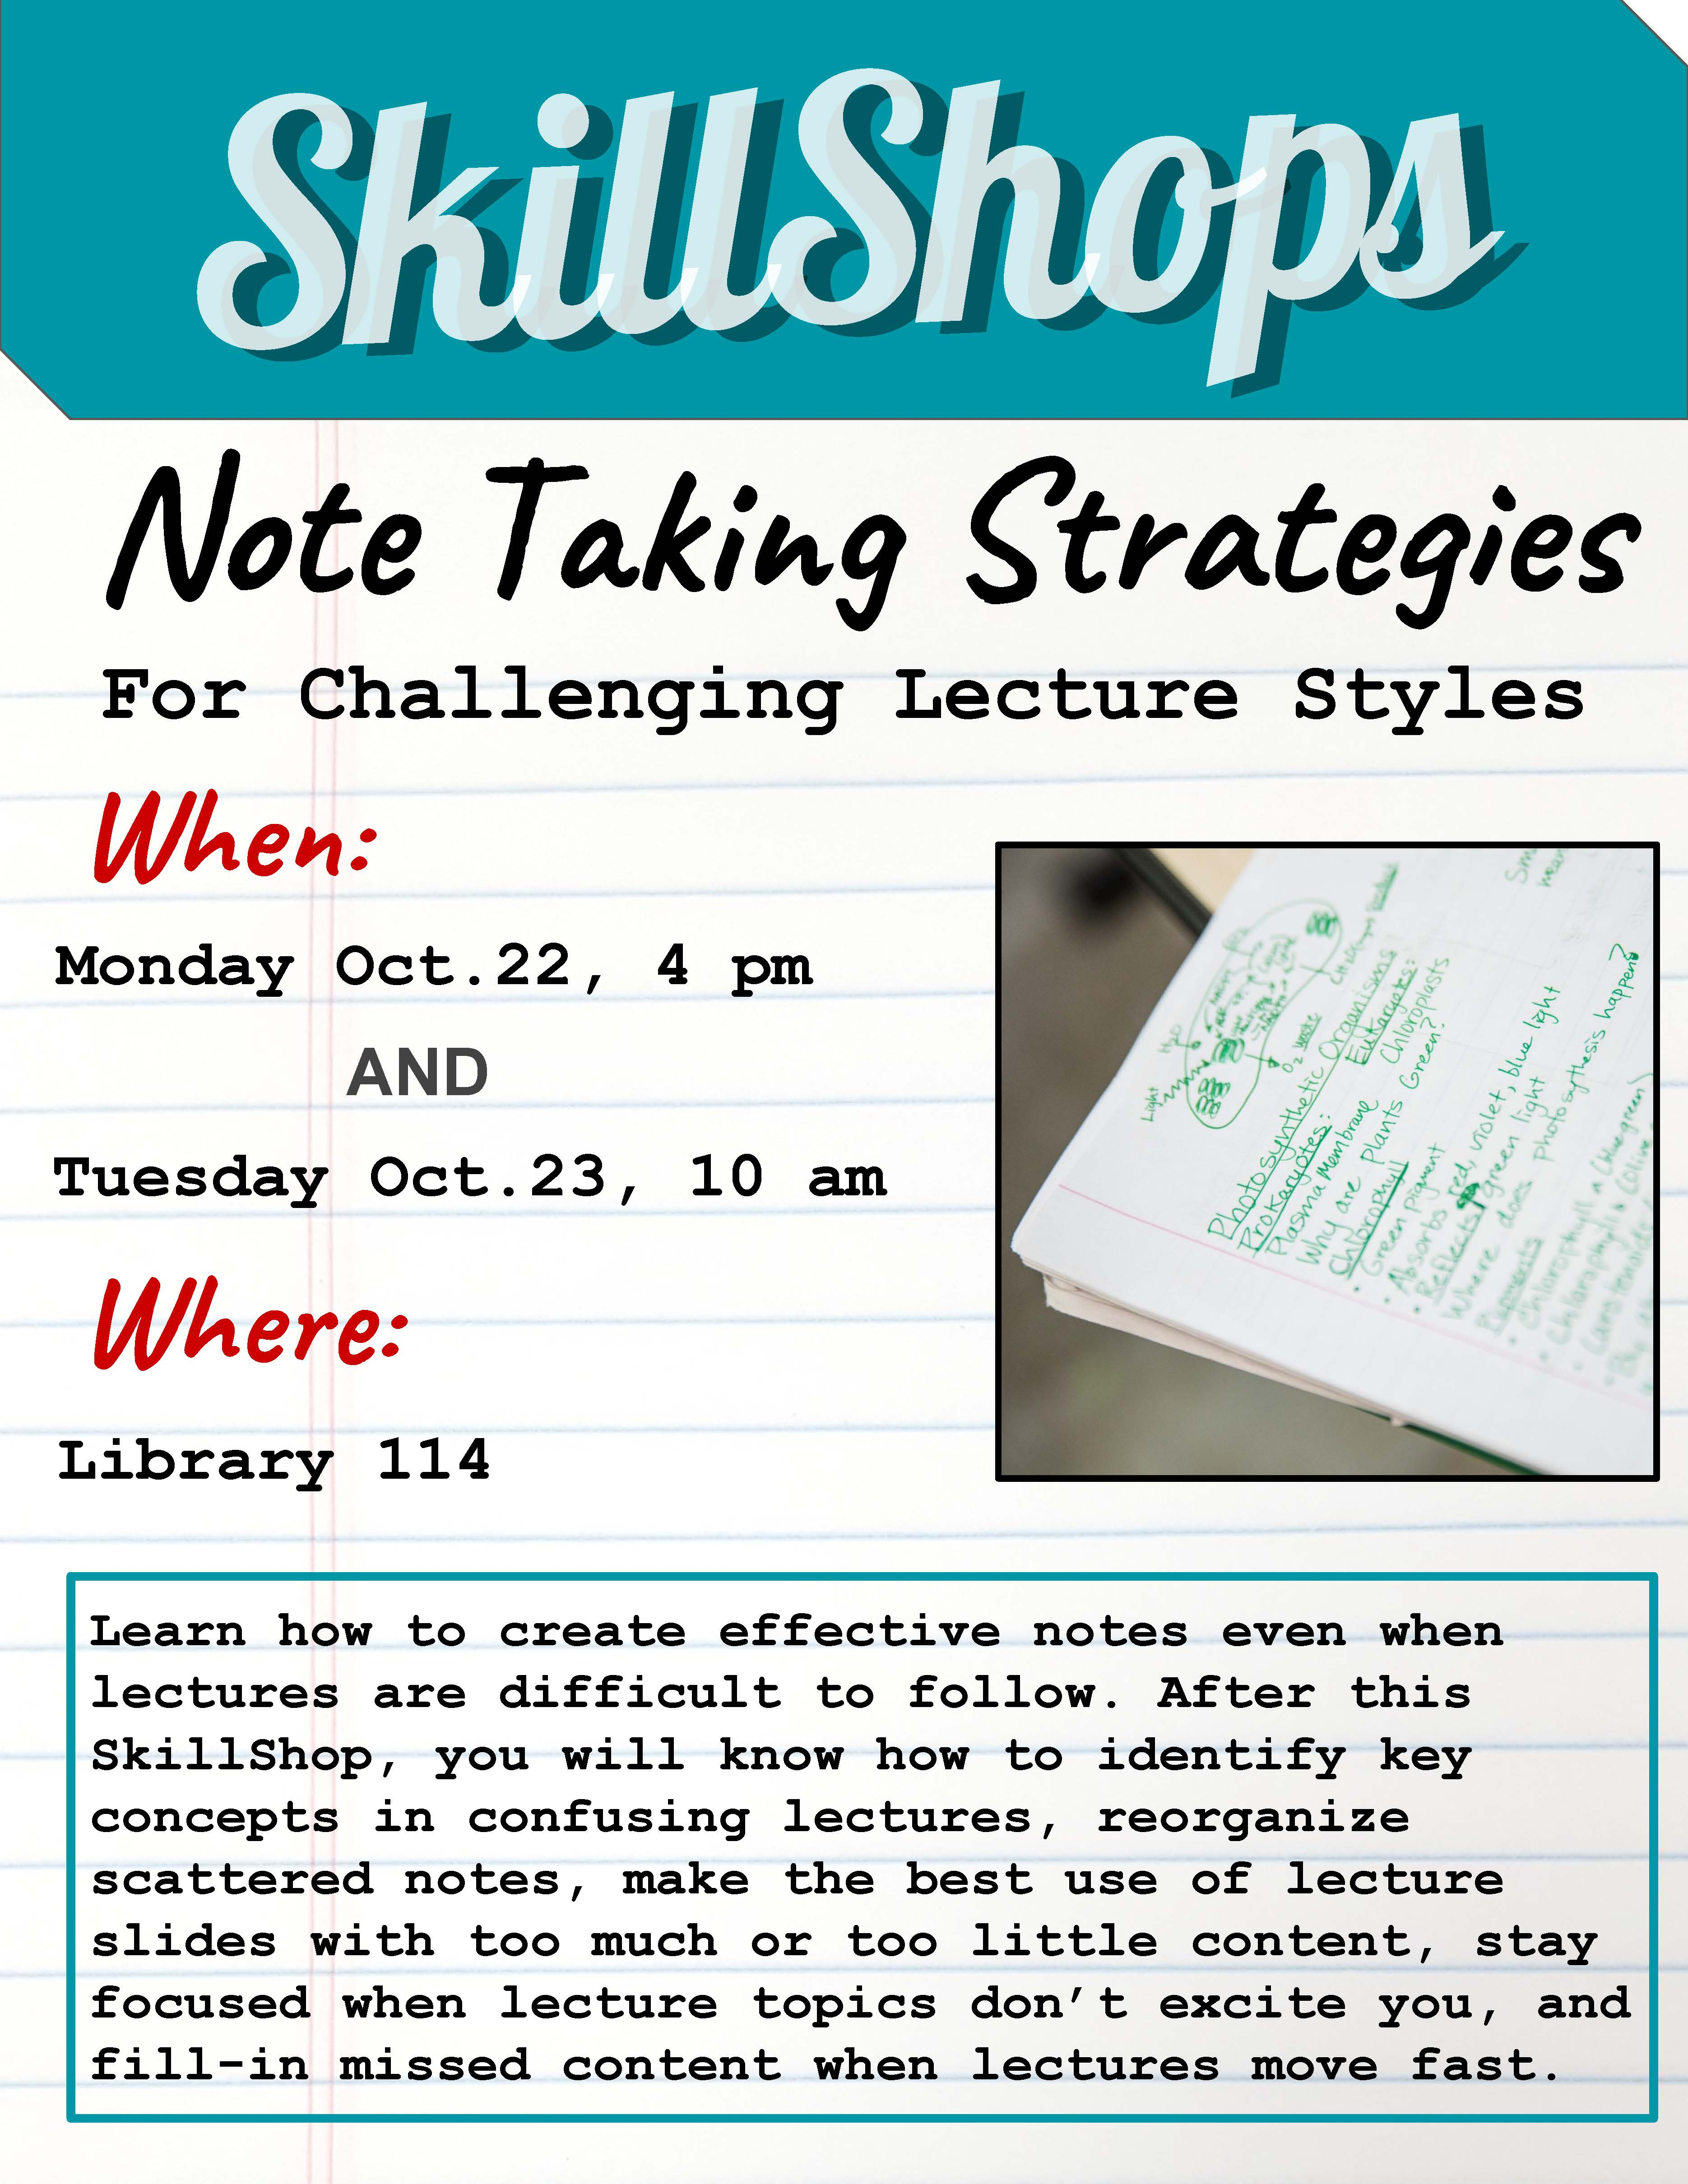 Note Taking Strategies for Challenging Lecture Styles